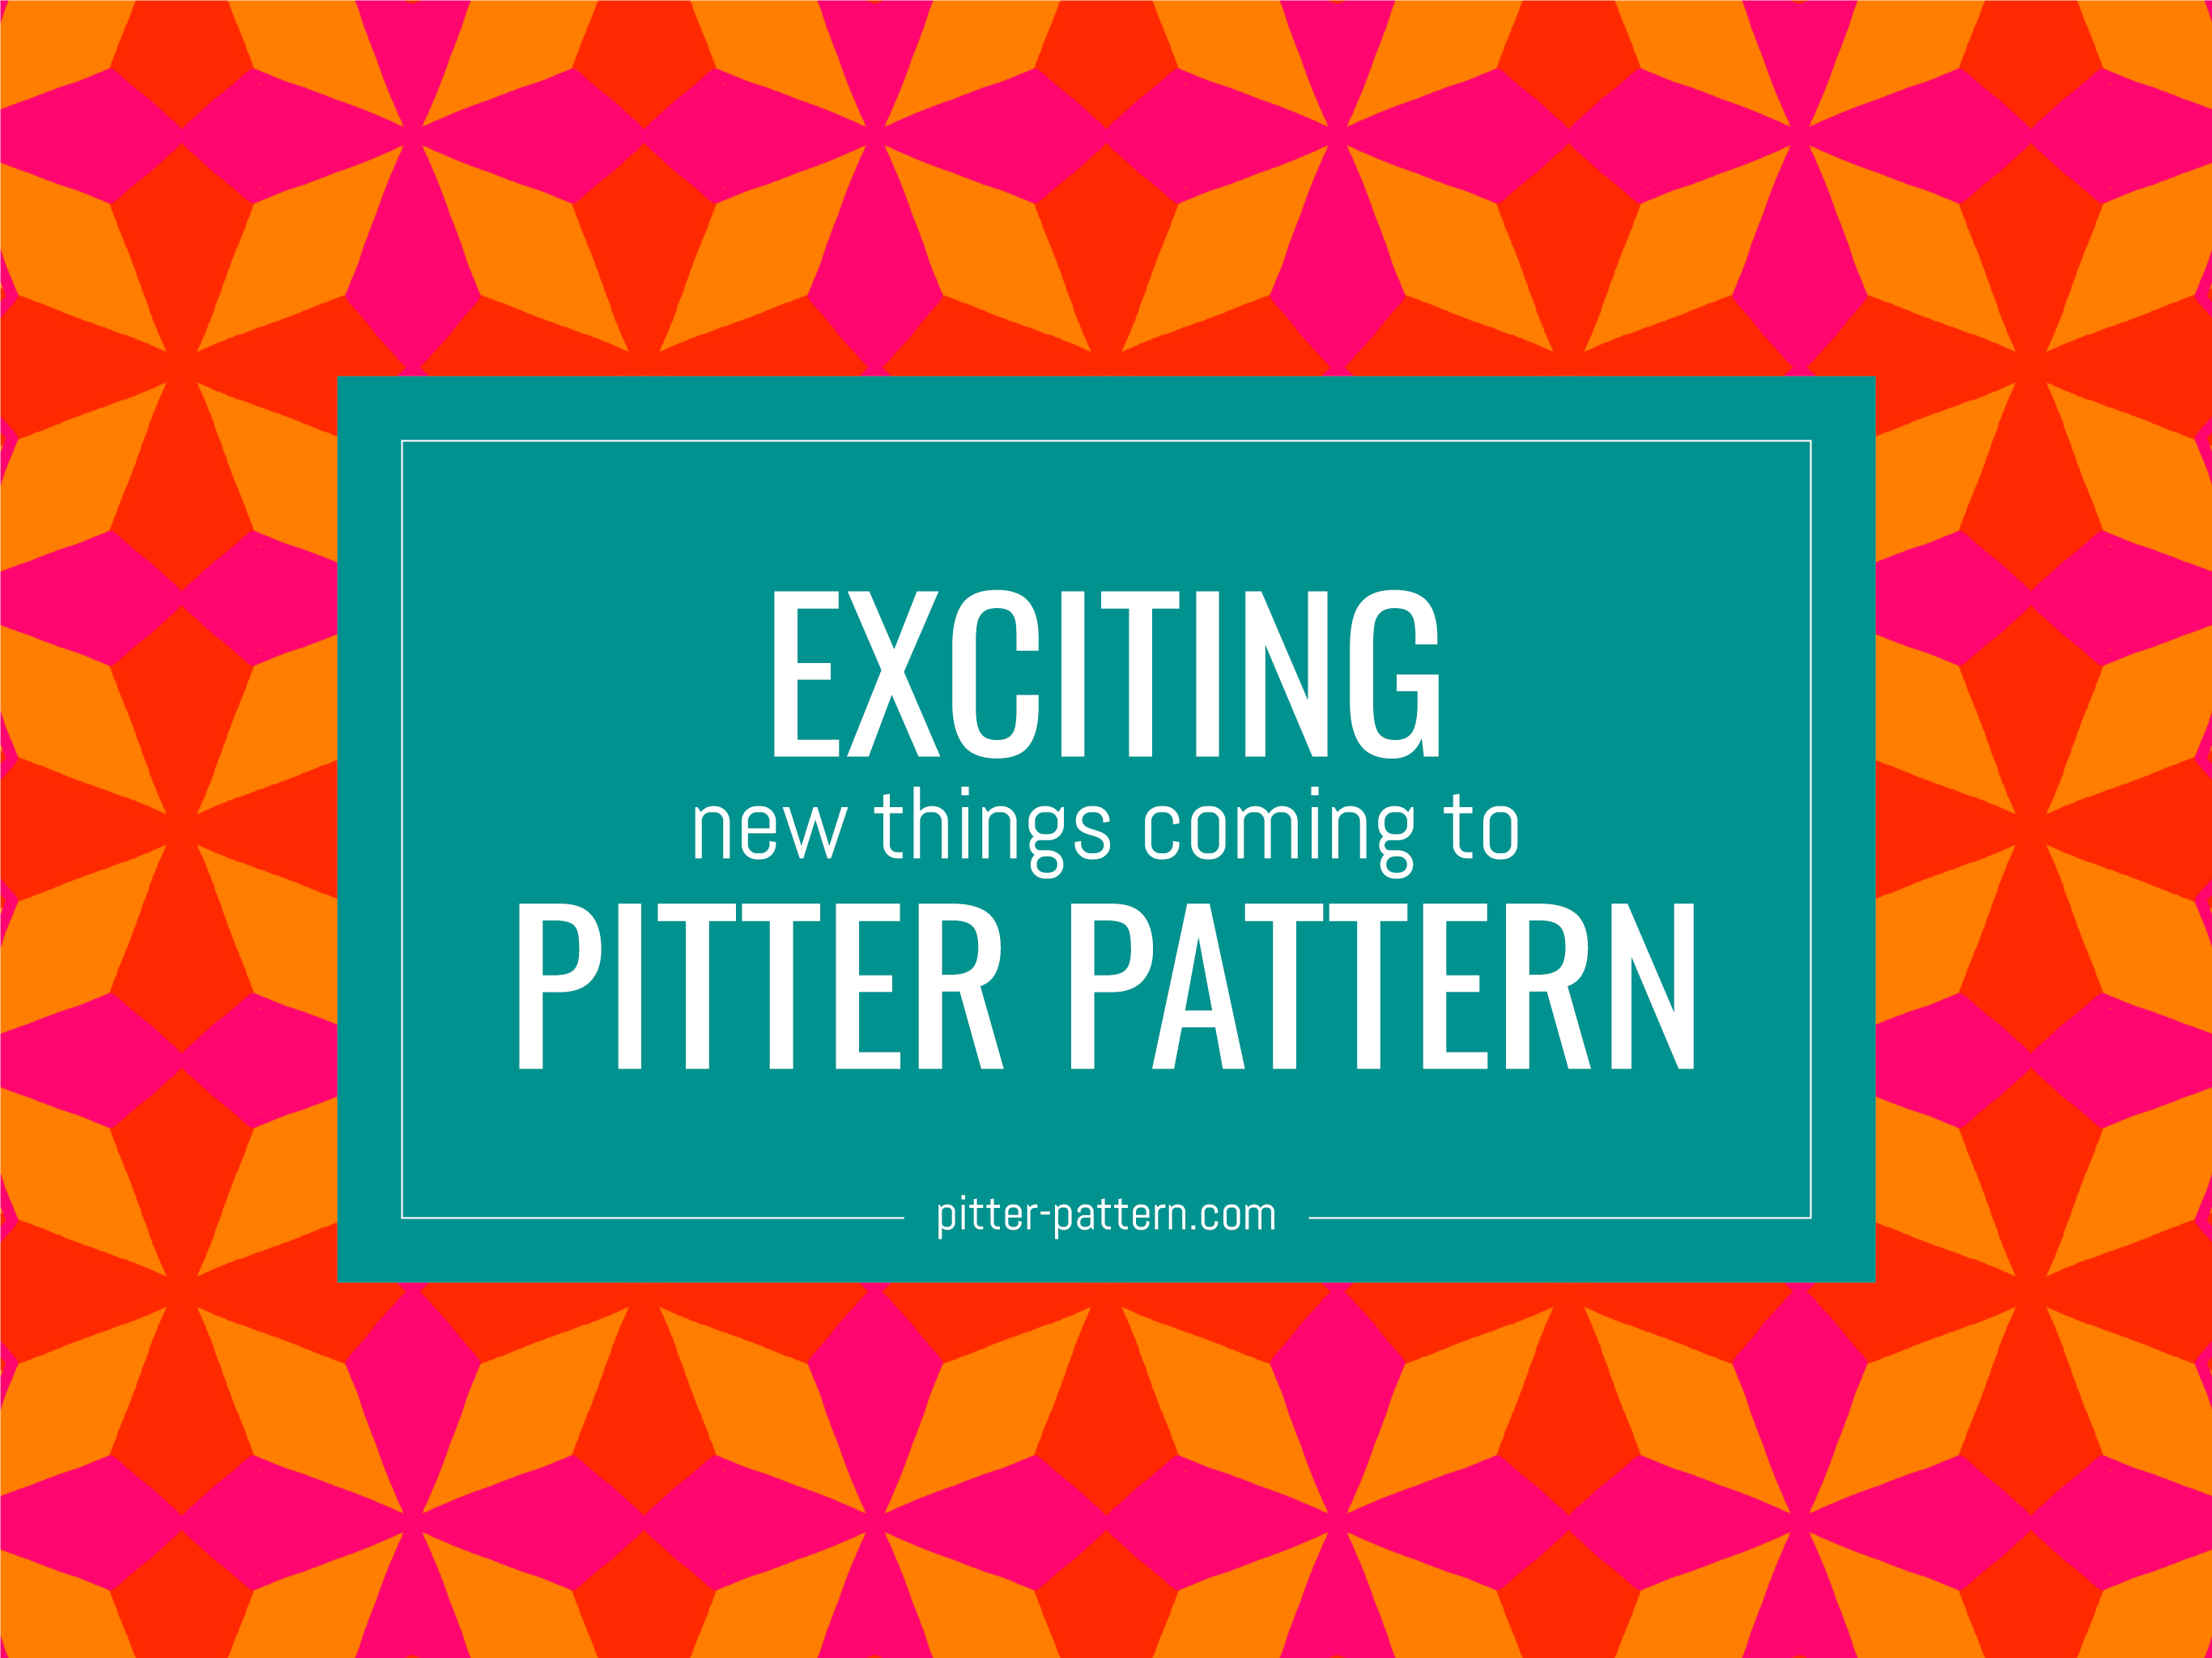 Exciting new things coming to Pitter Pattern | Pitter Pattern